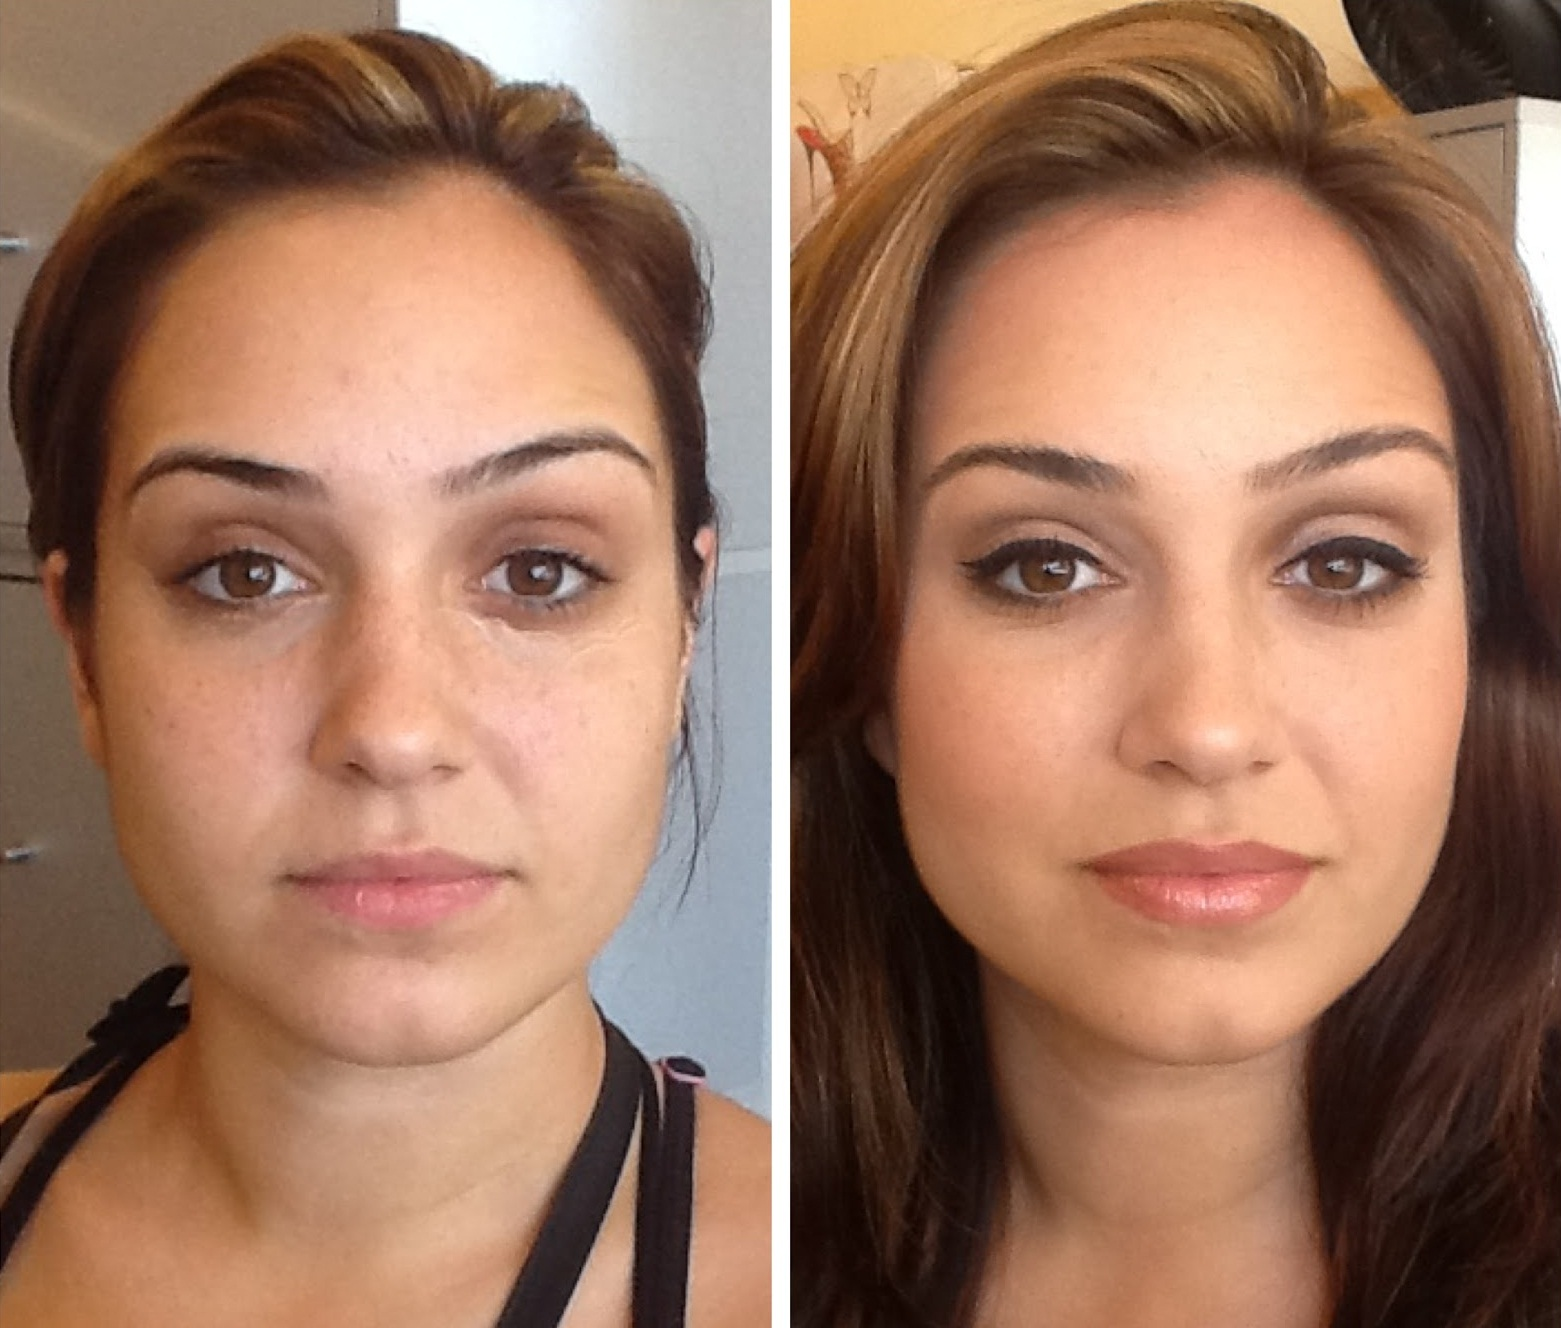 The Rules Revisited What Men Think Of You Without Makeup